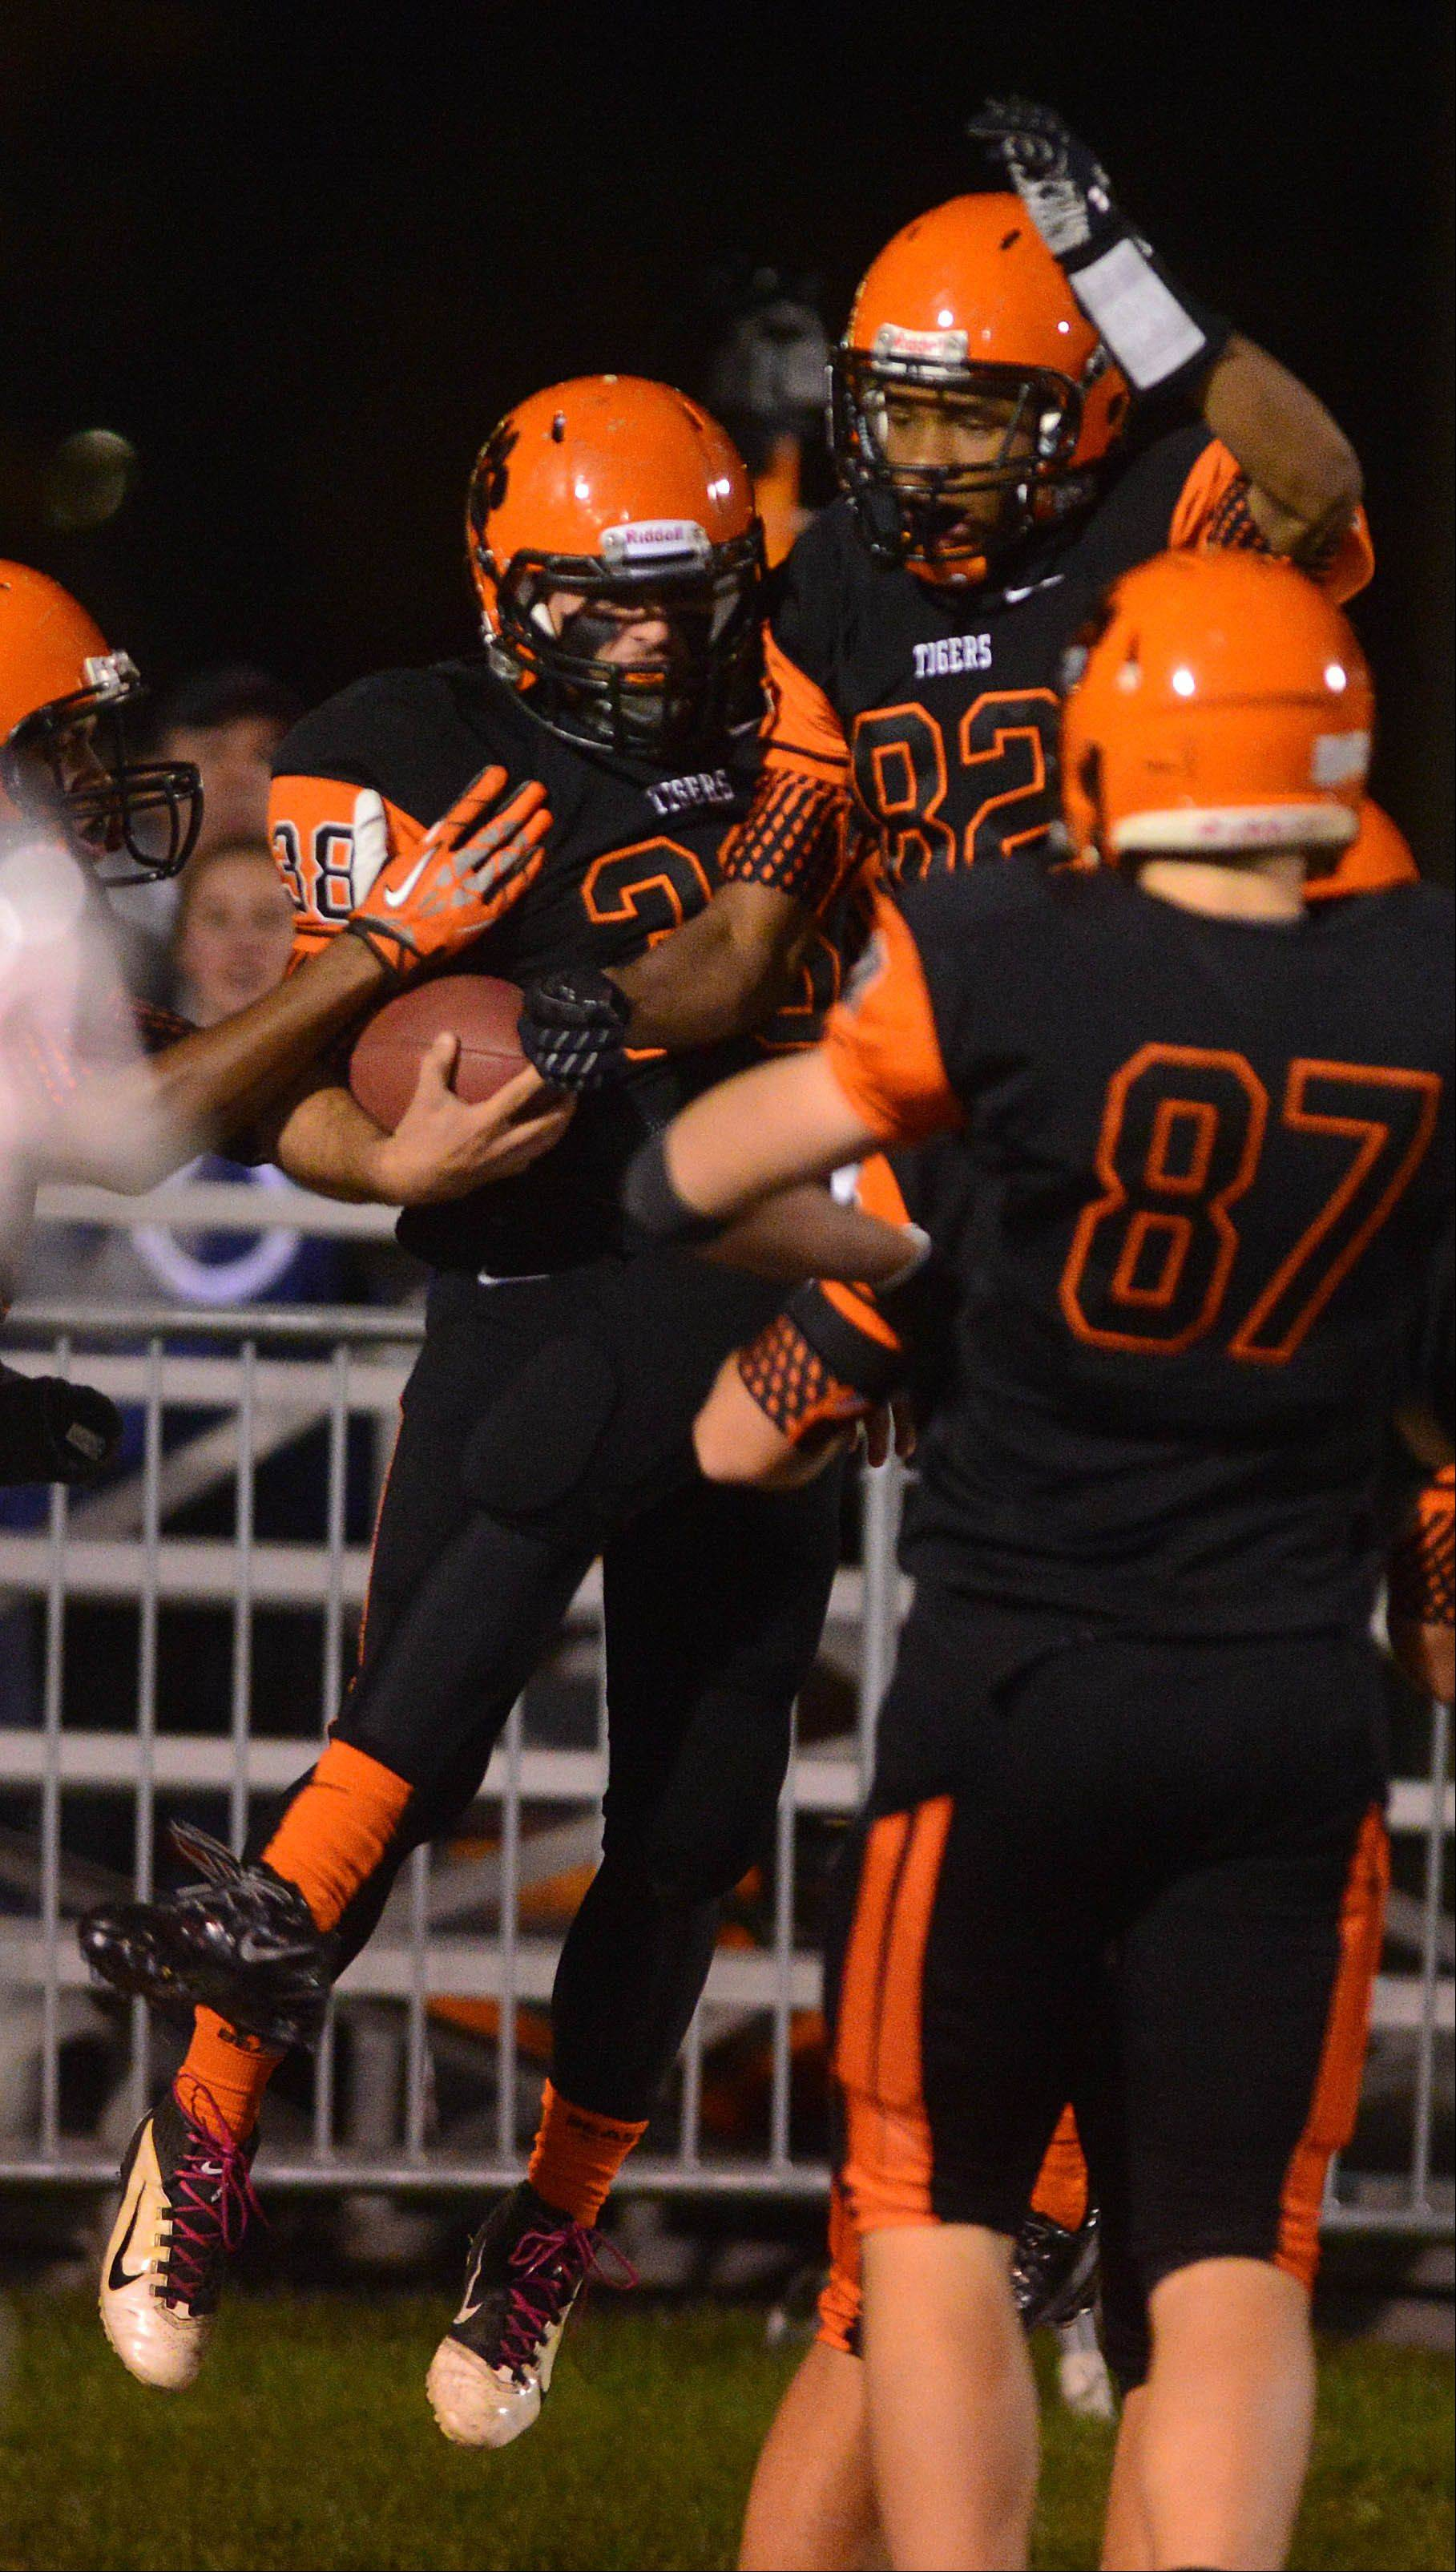 Zack Moberg,left, and Keishawn Watson celebrate a touchdown.